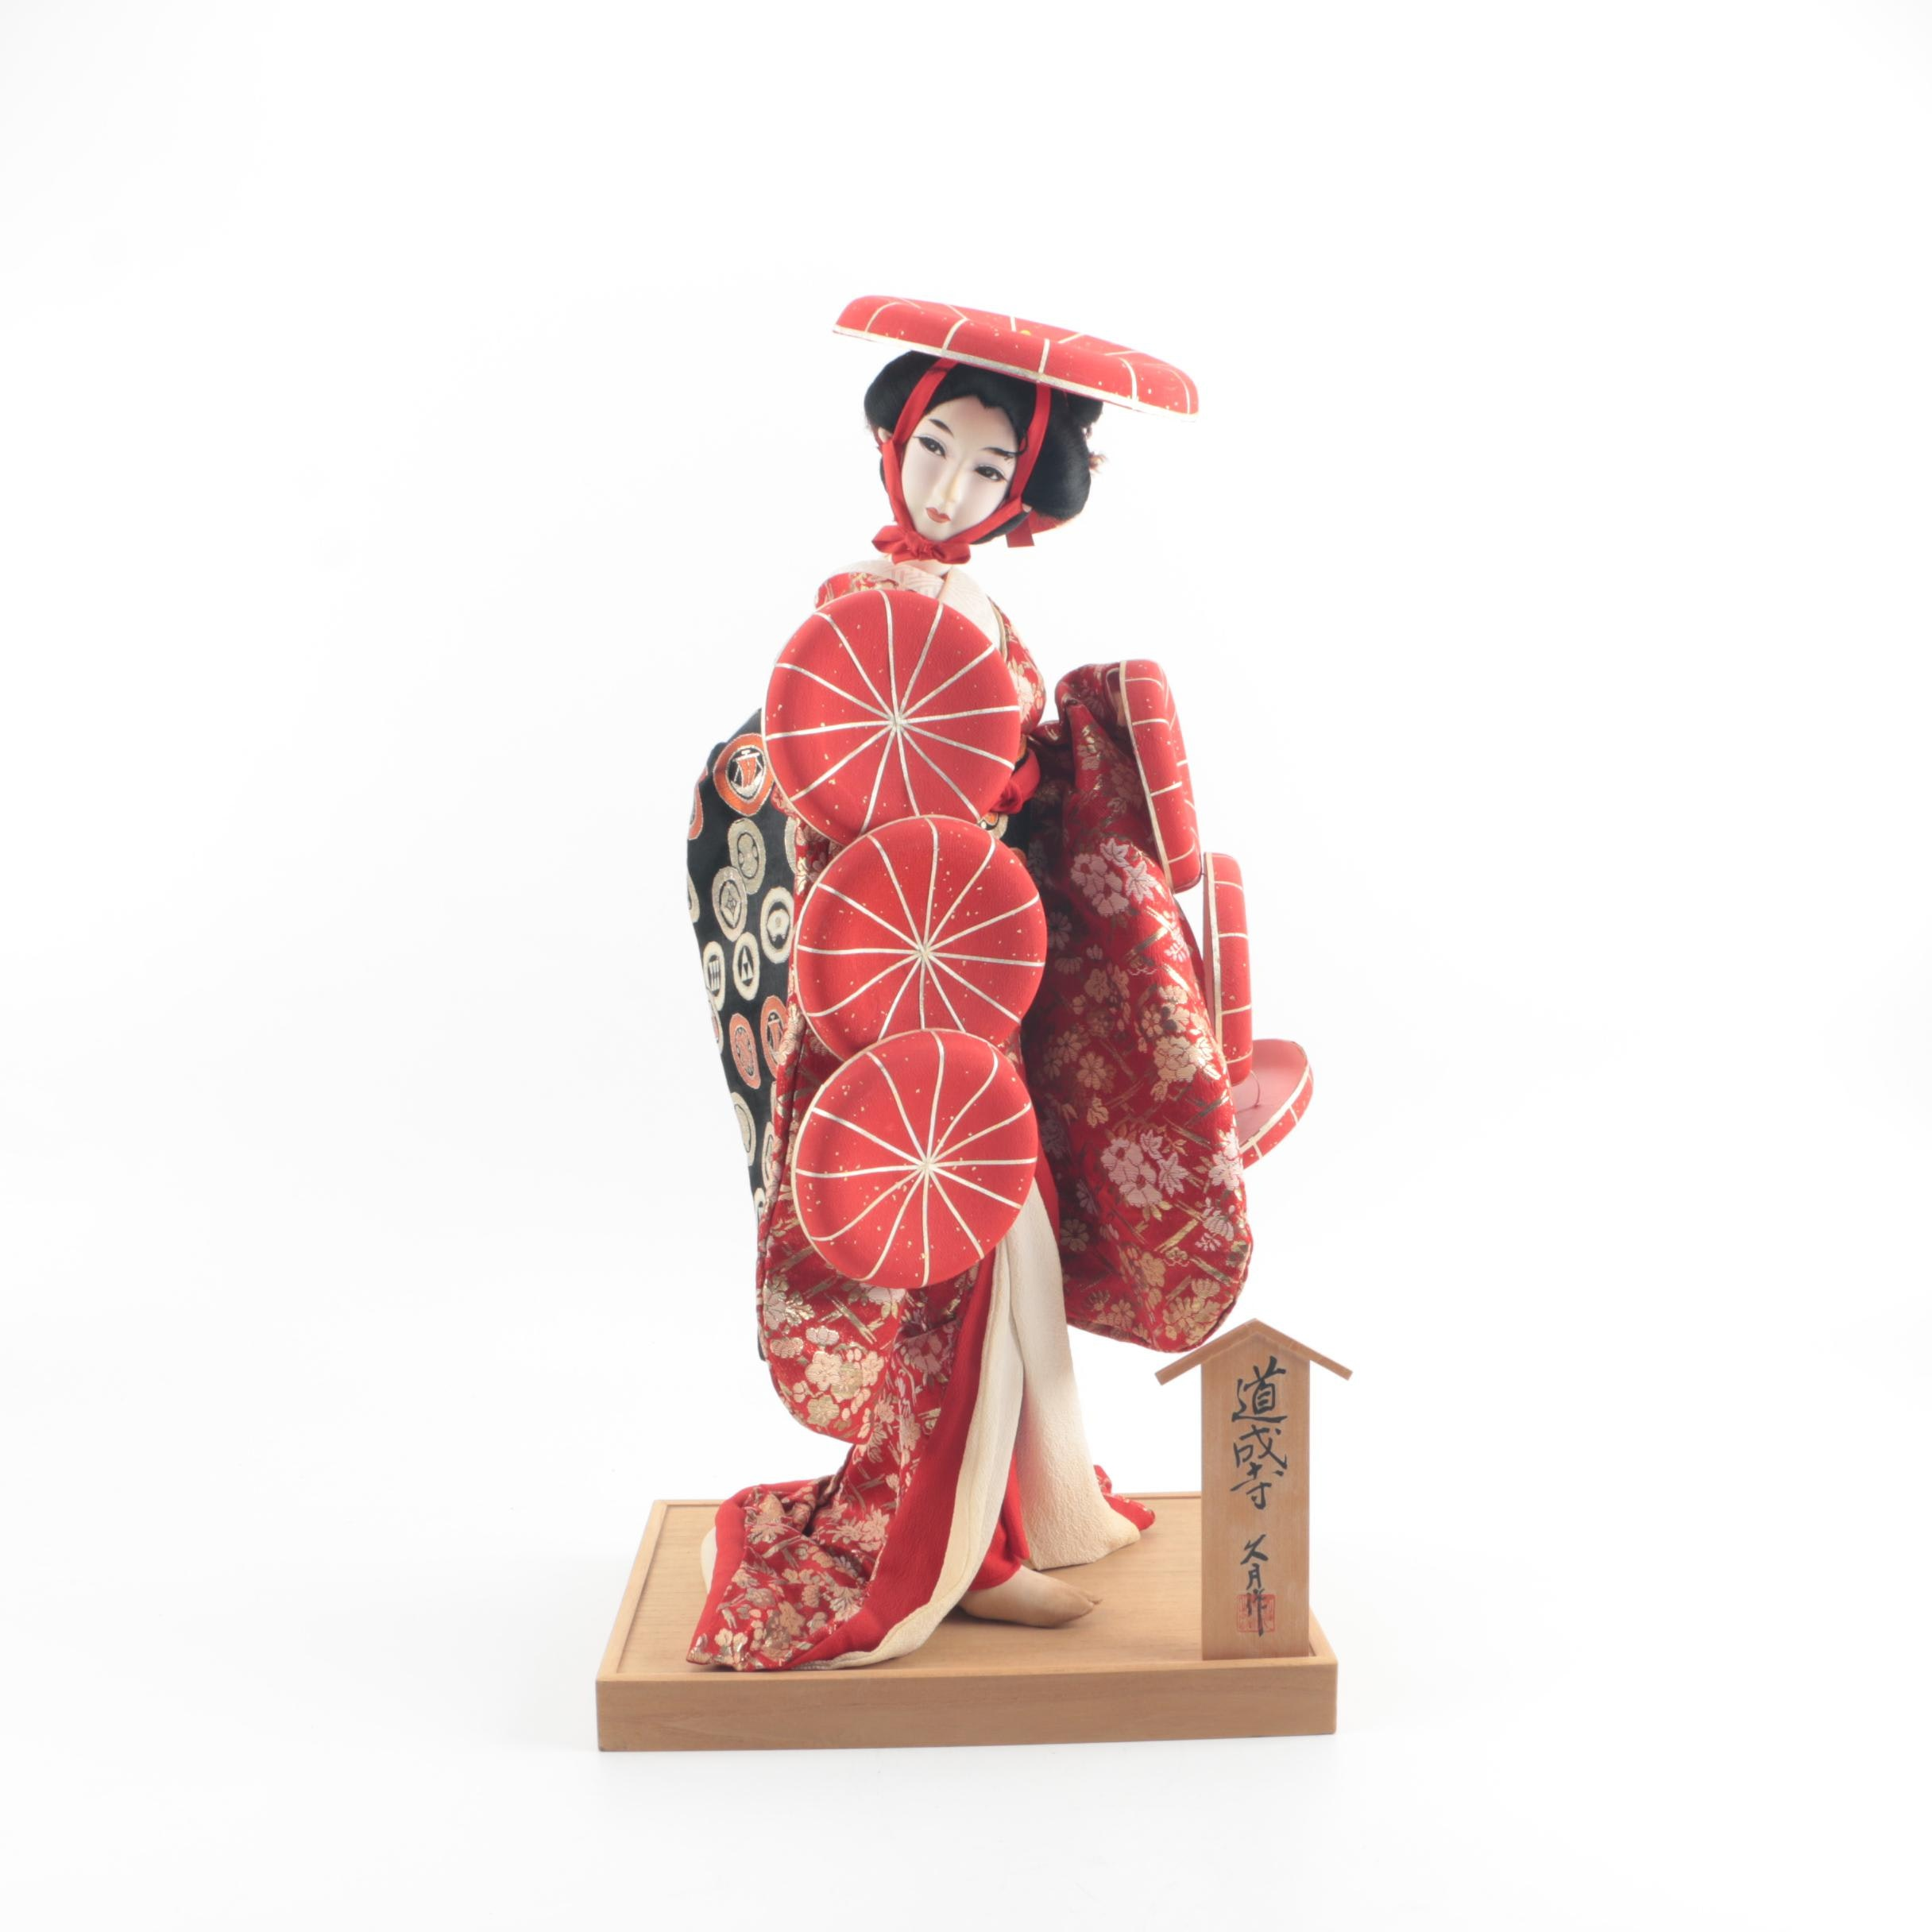 Japanese Hand-Painted Stocking Doll with Stand